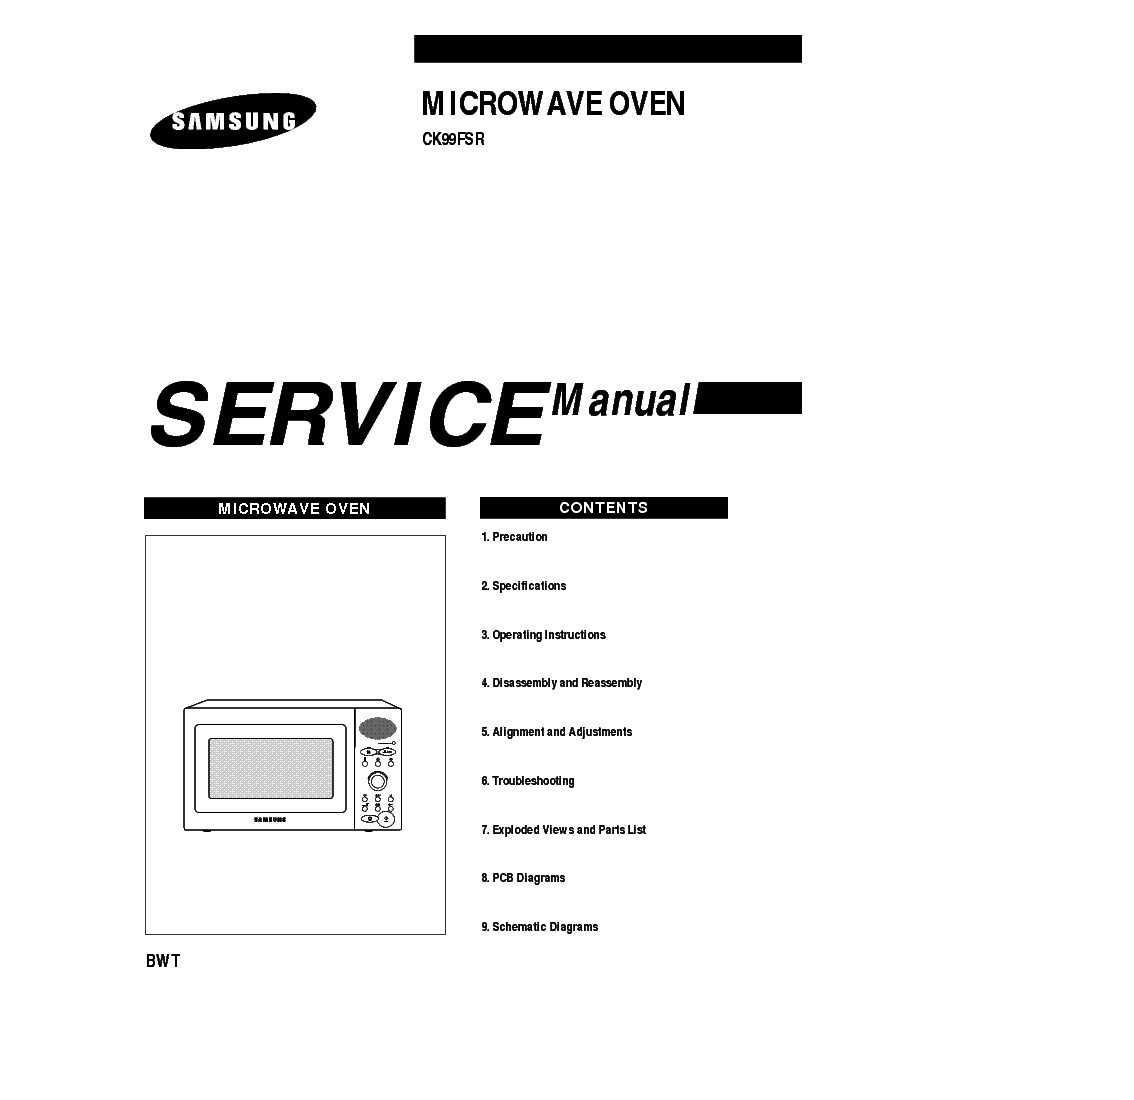 SAMSUNG CK99FSR BWT Service Manual download, schematics